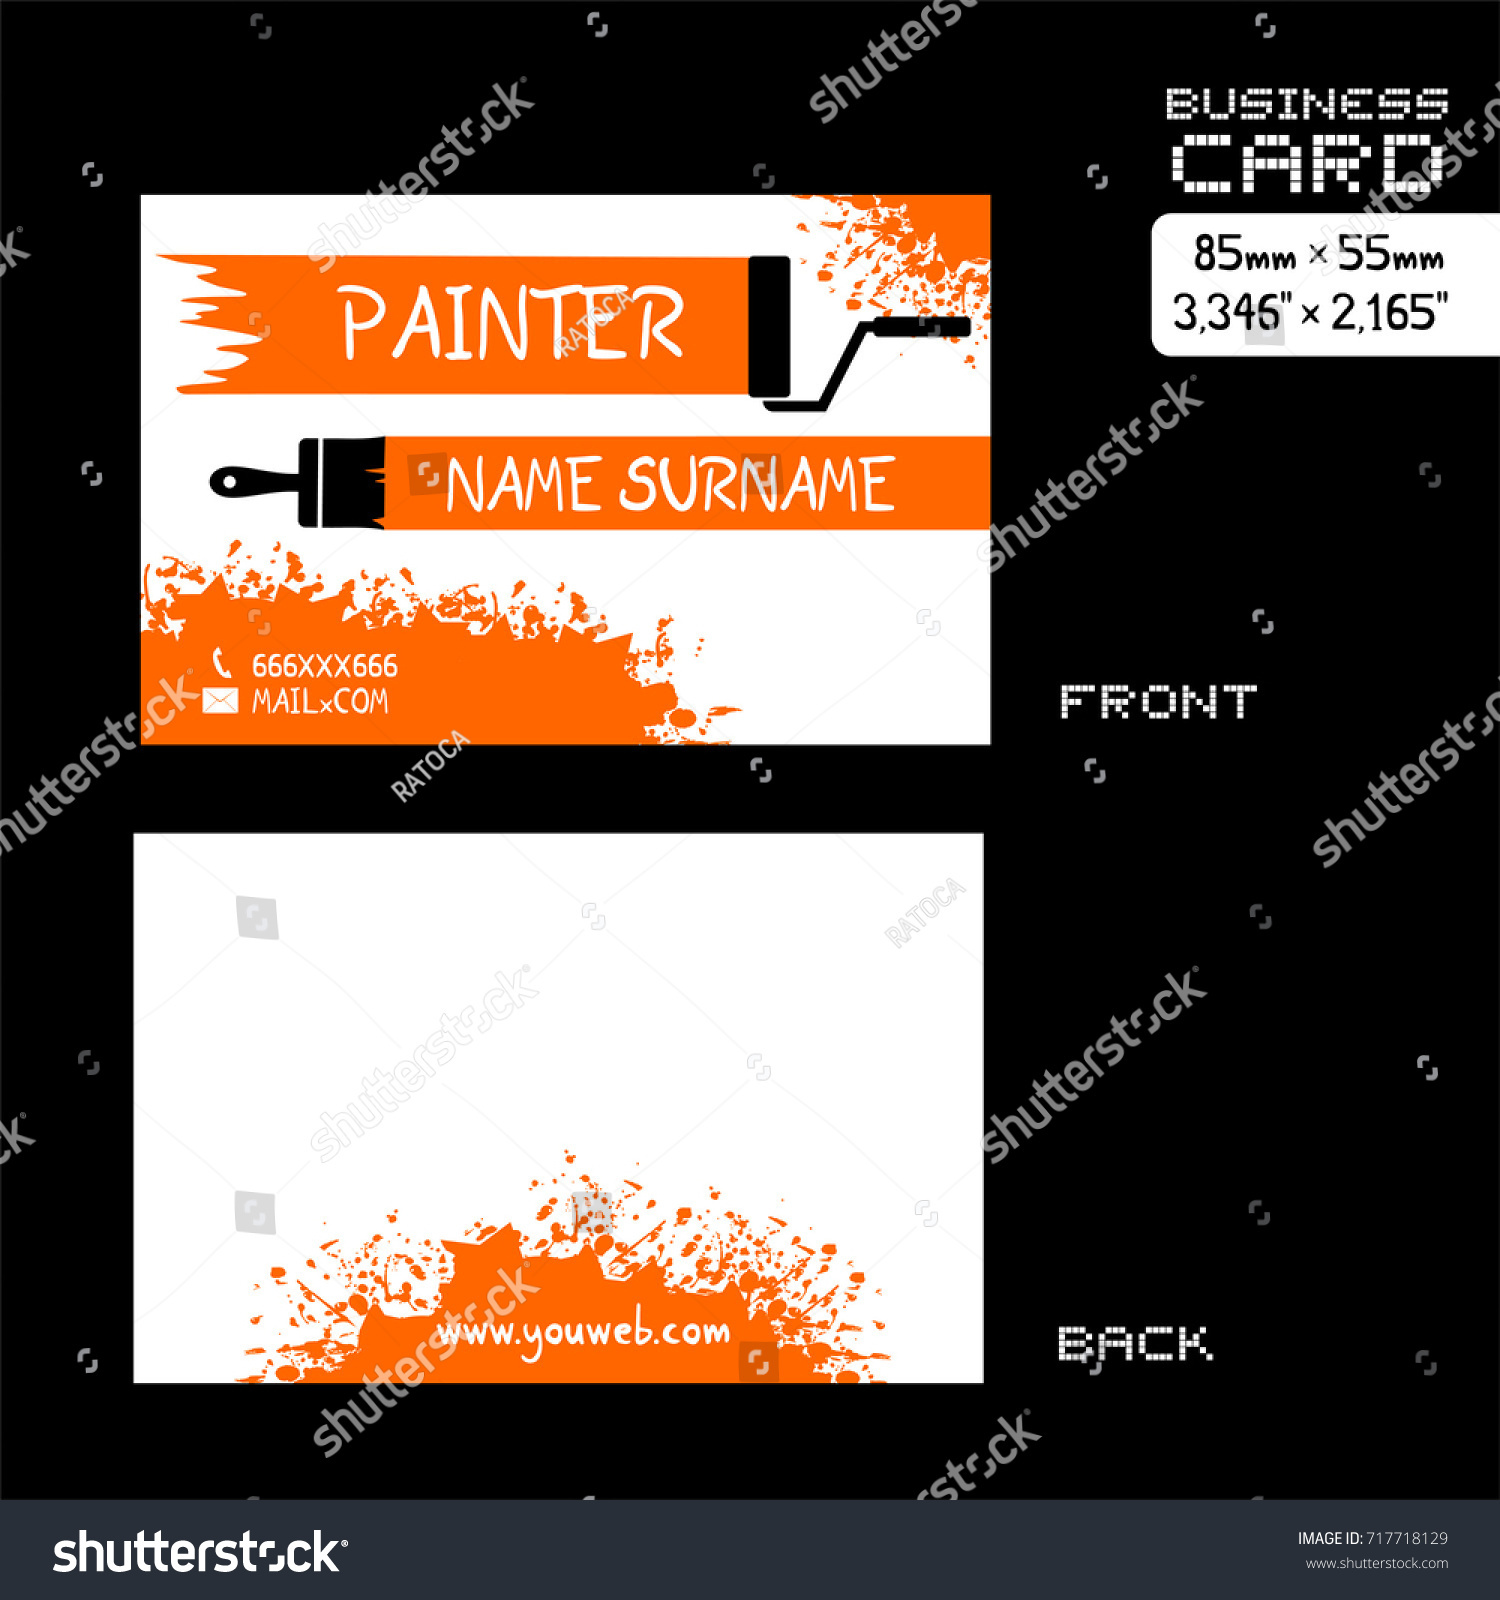 Business card for painter gallery free business cards business card painter worker stock vector 717718129 shutterstock business card for painter worker magicingreecefo gallery magicingreecefo Gallery